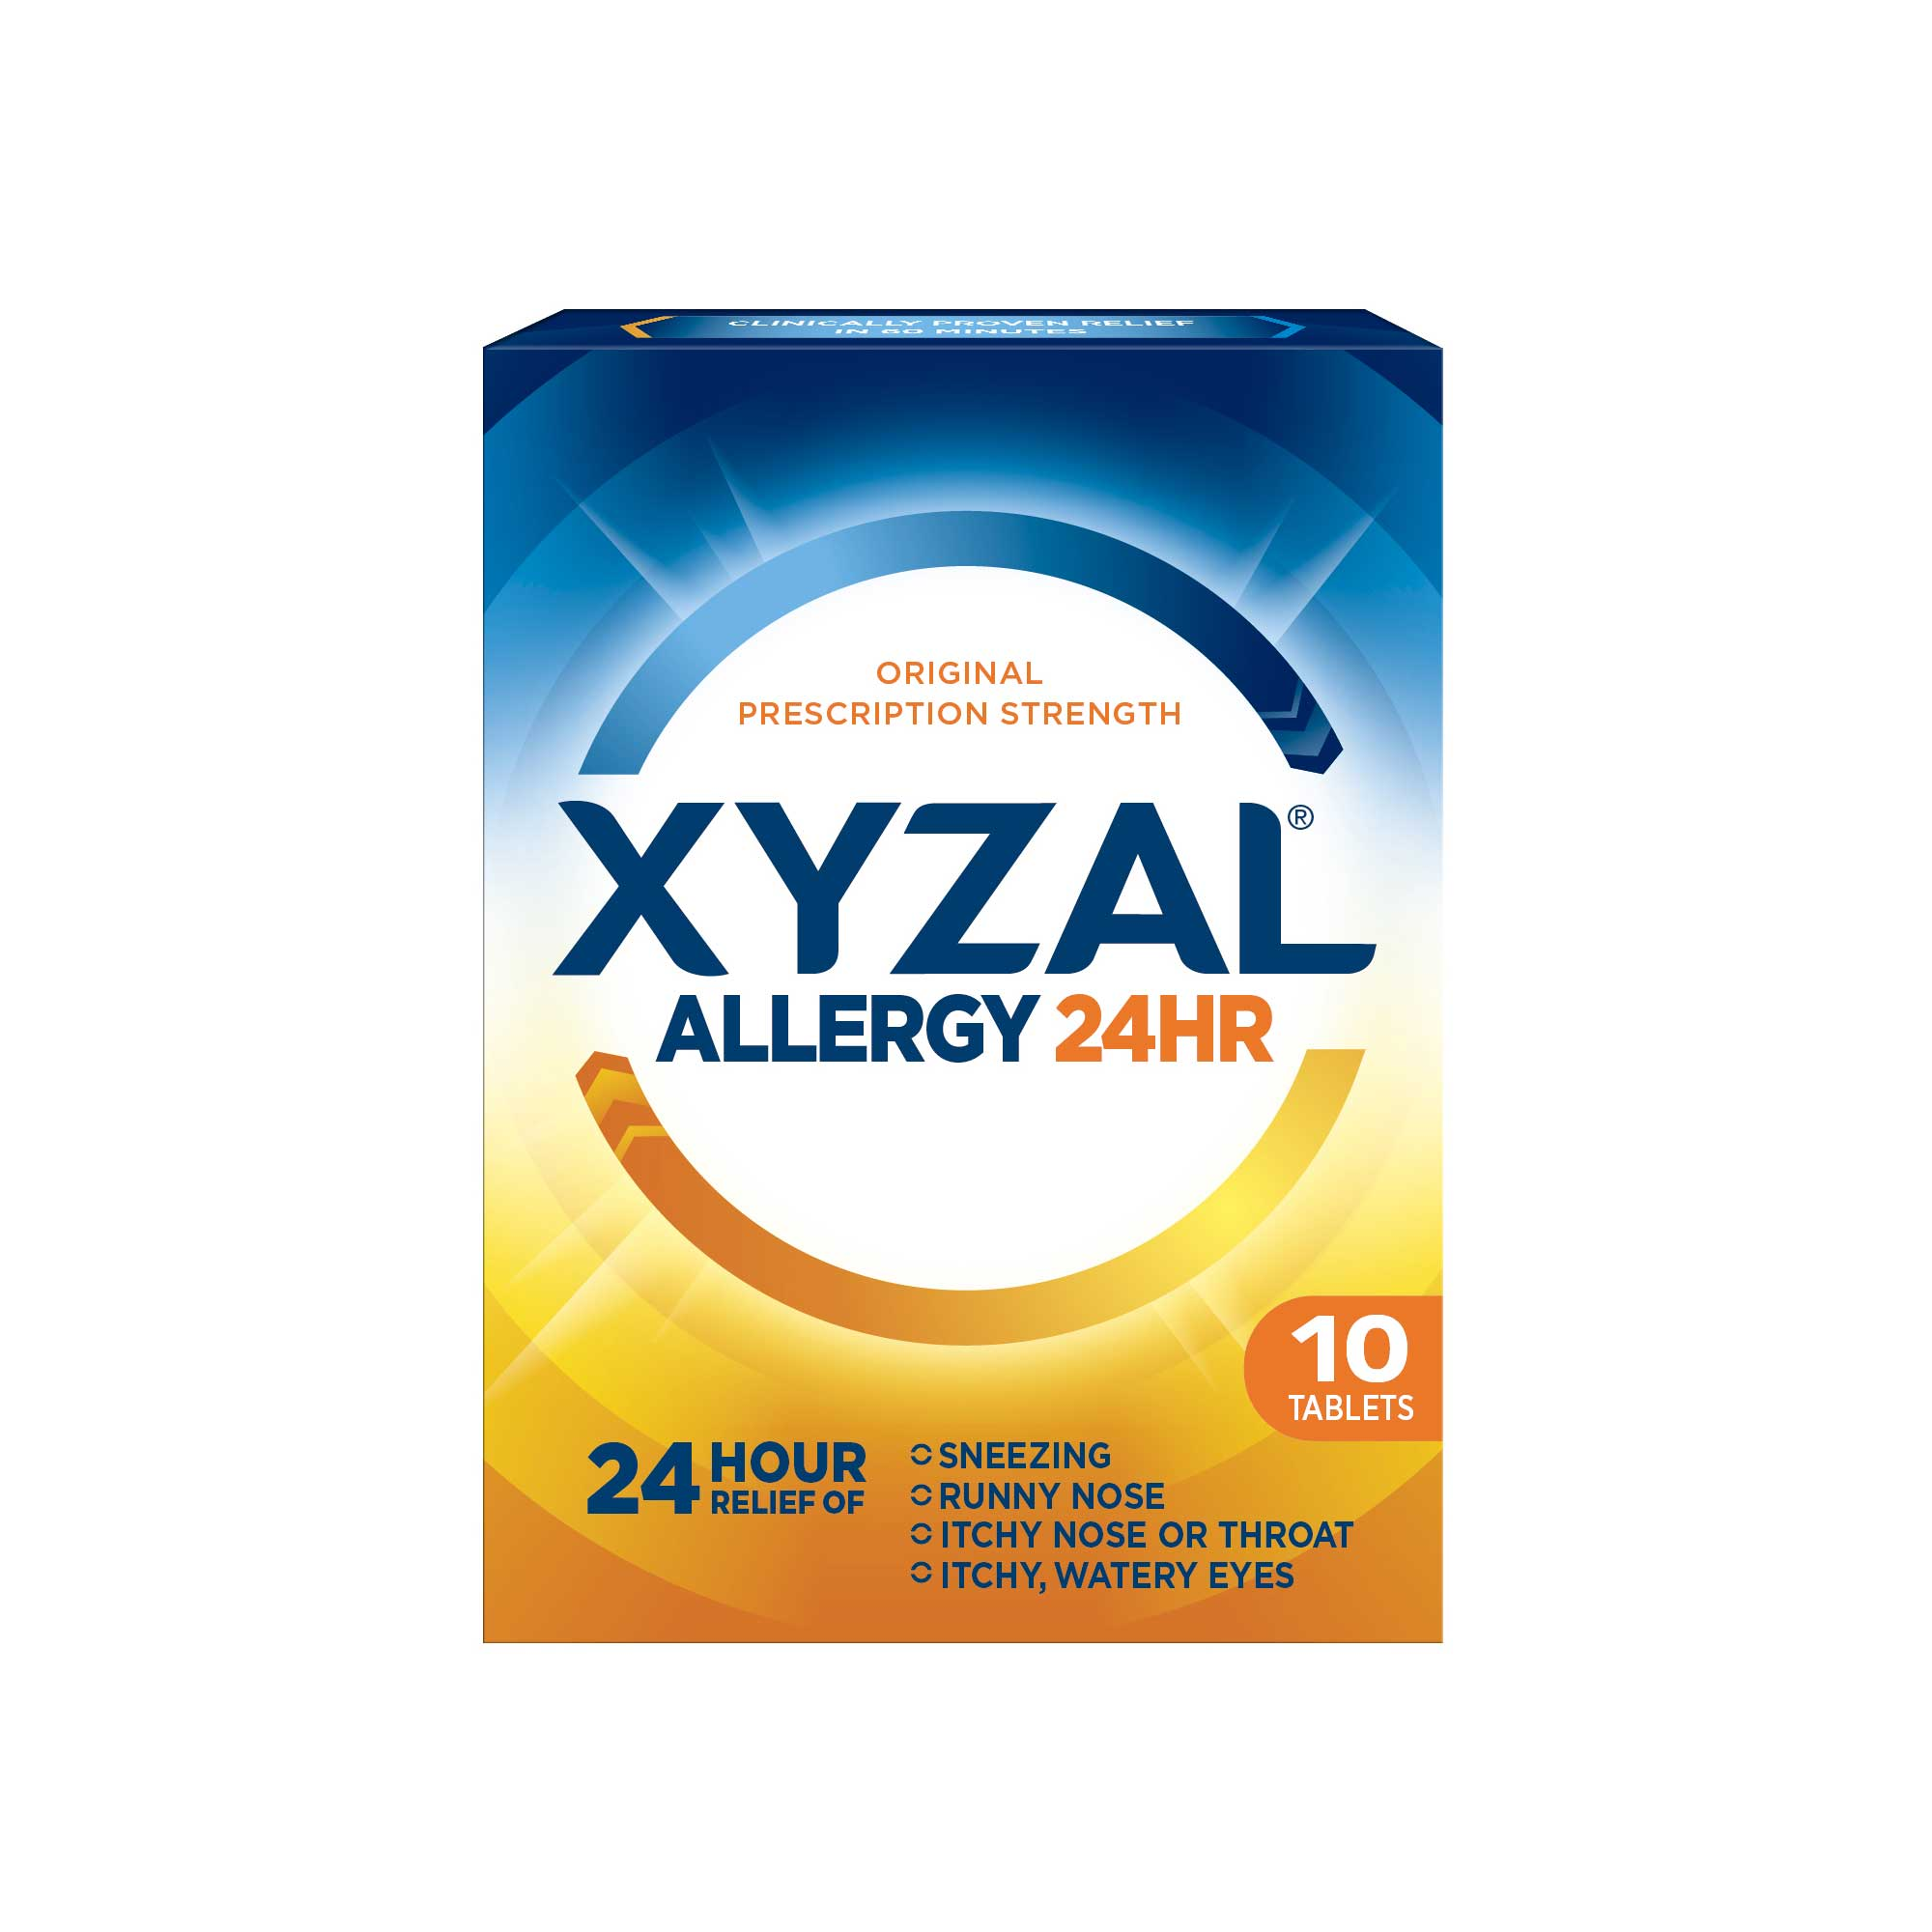 Xyzal Allergy 24HR